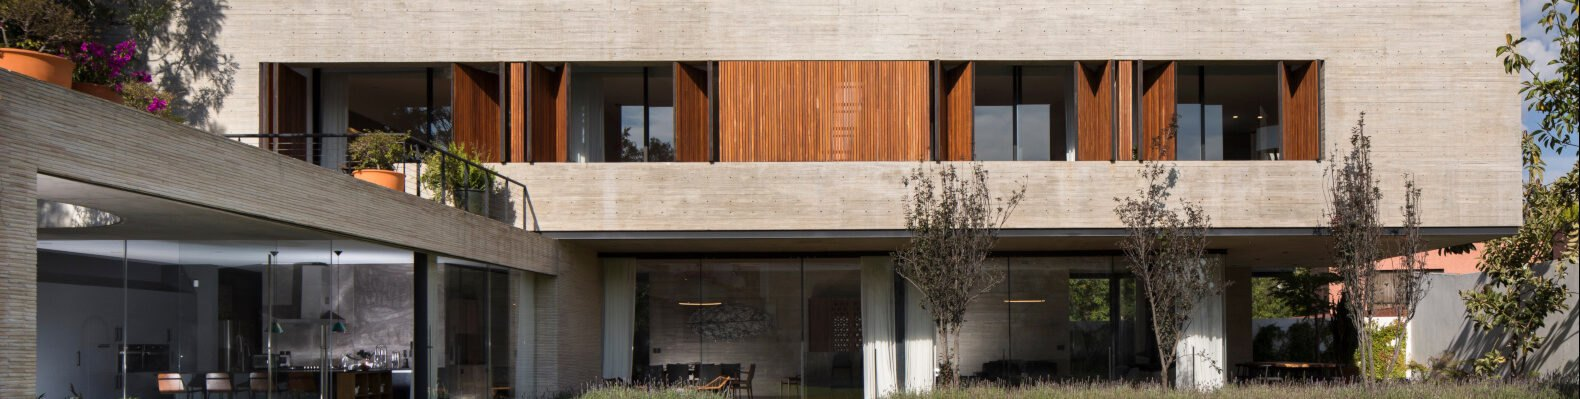 rectangular design with concrete and wood cladding